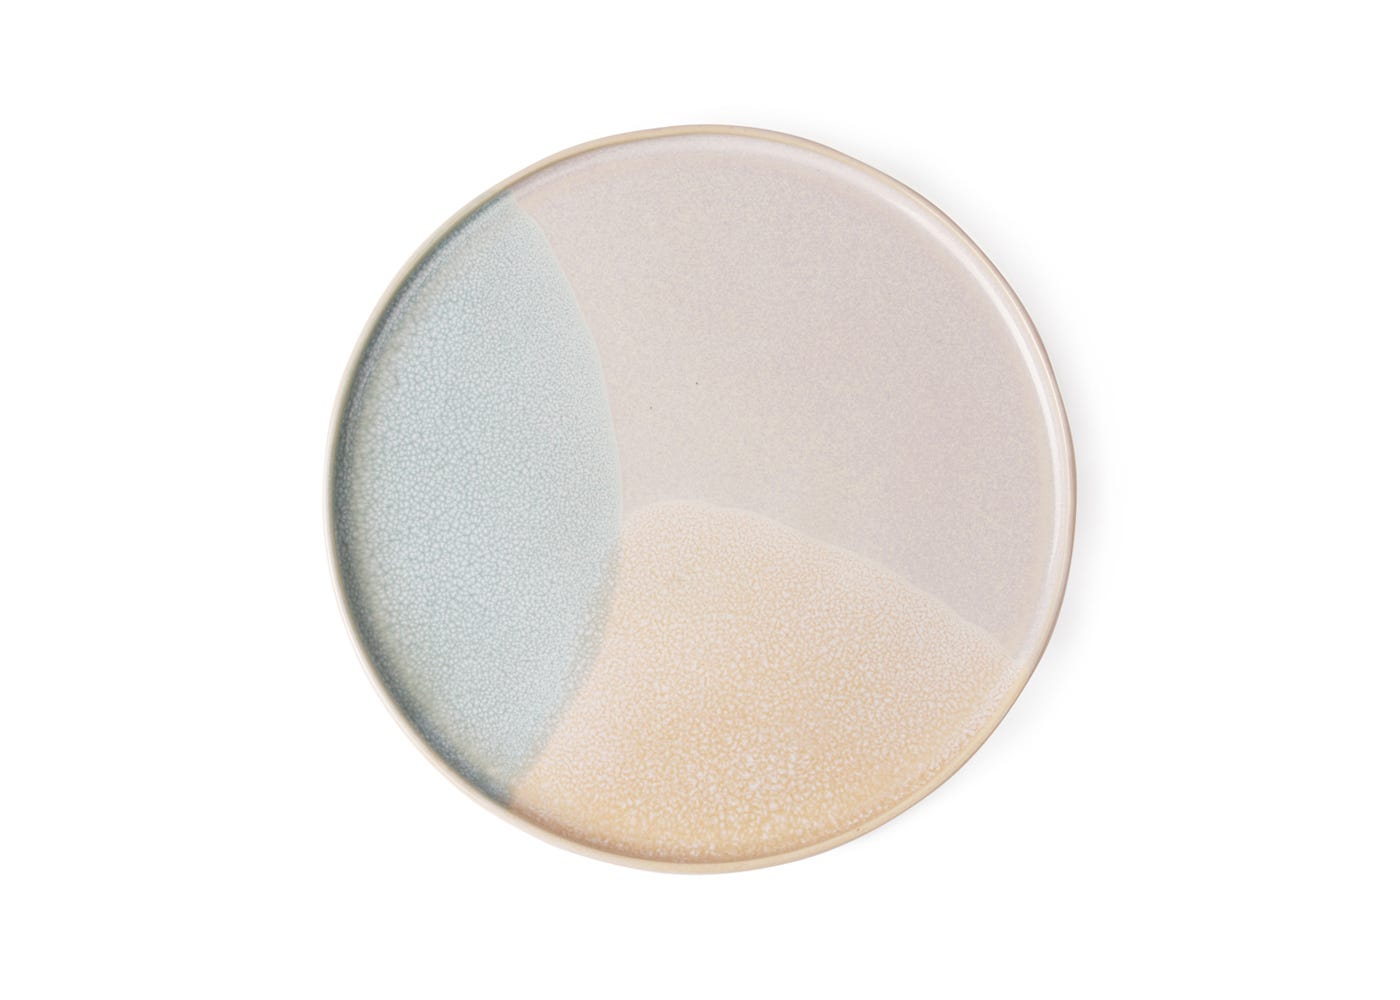 Round Side Plate in Mint/Nude